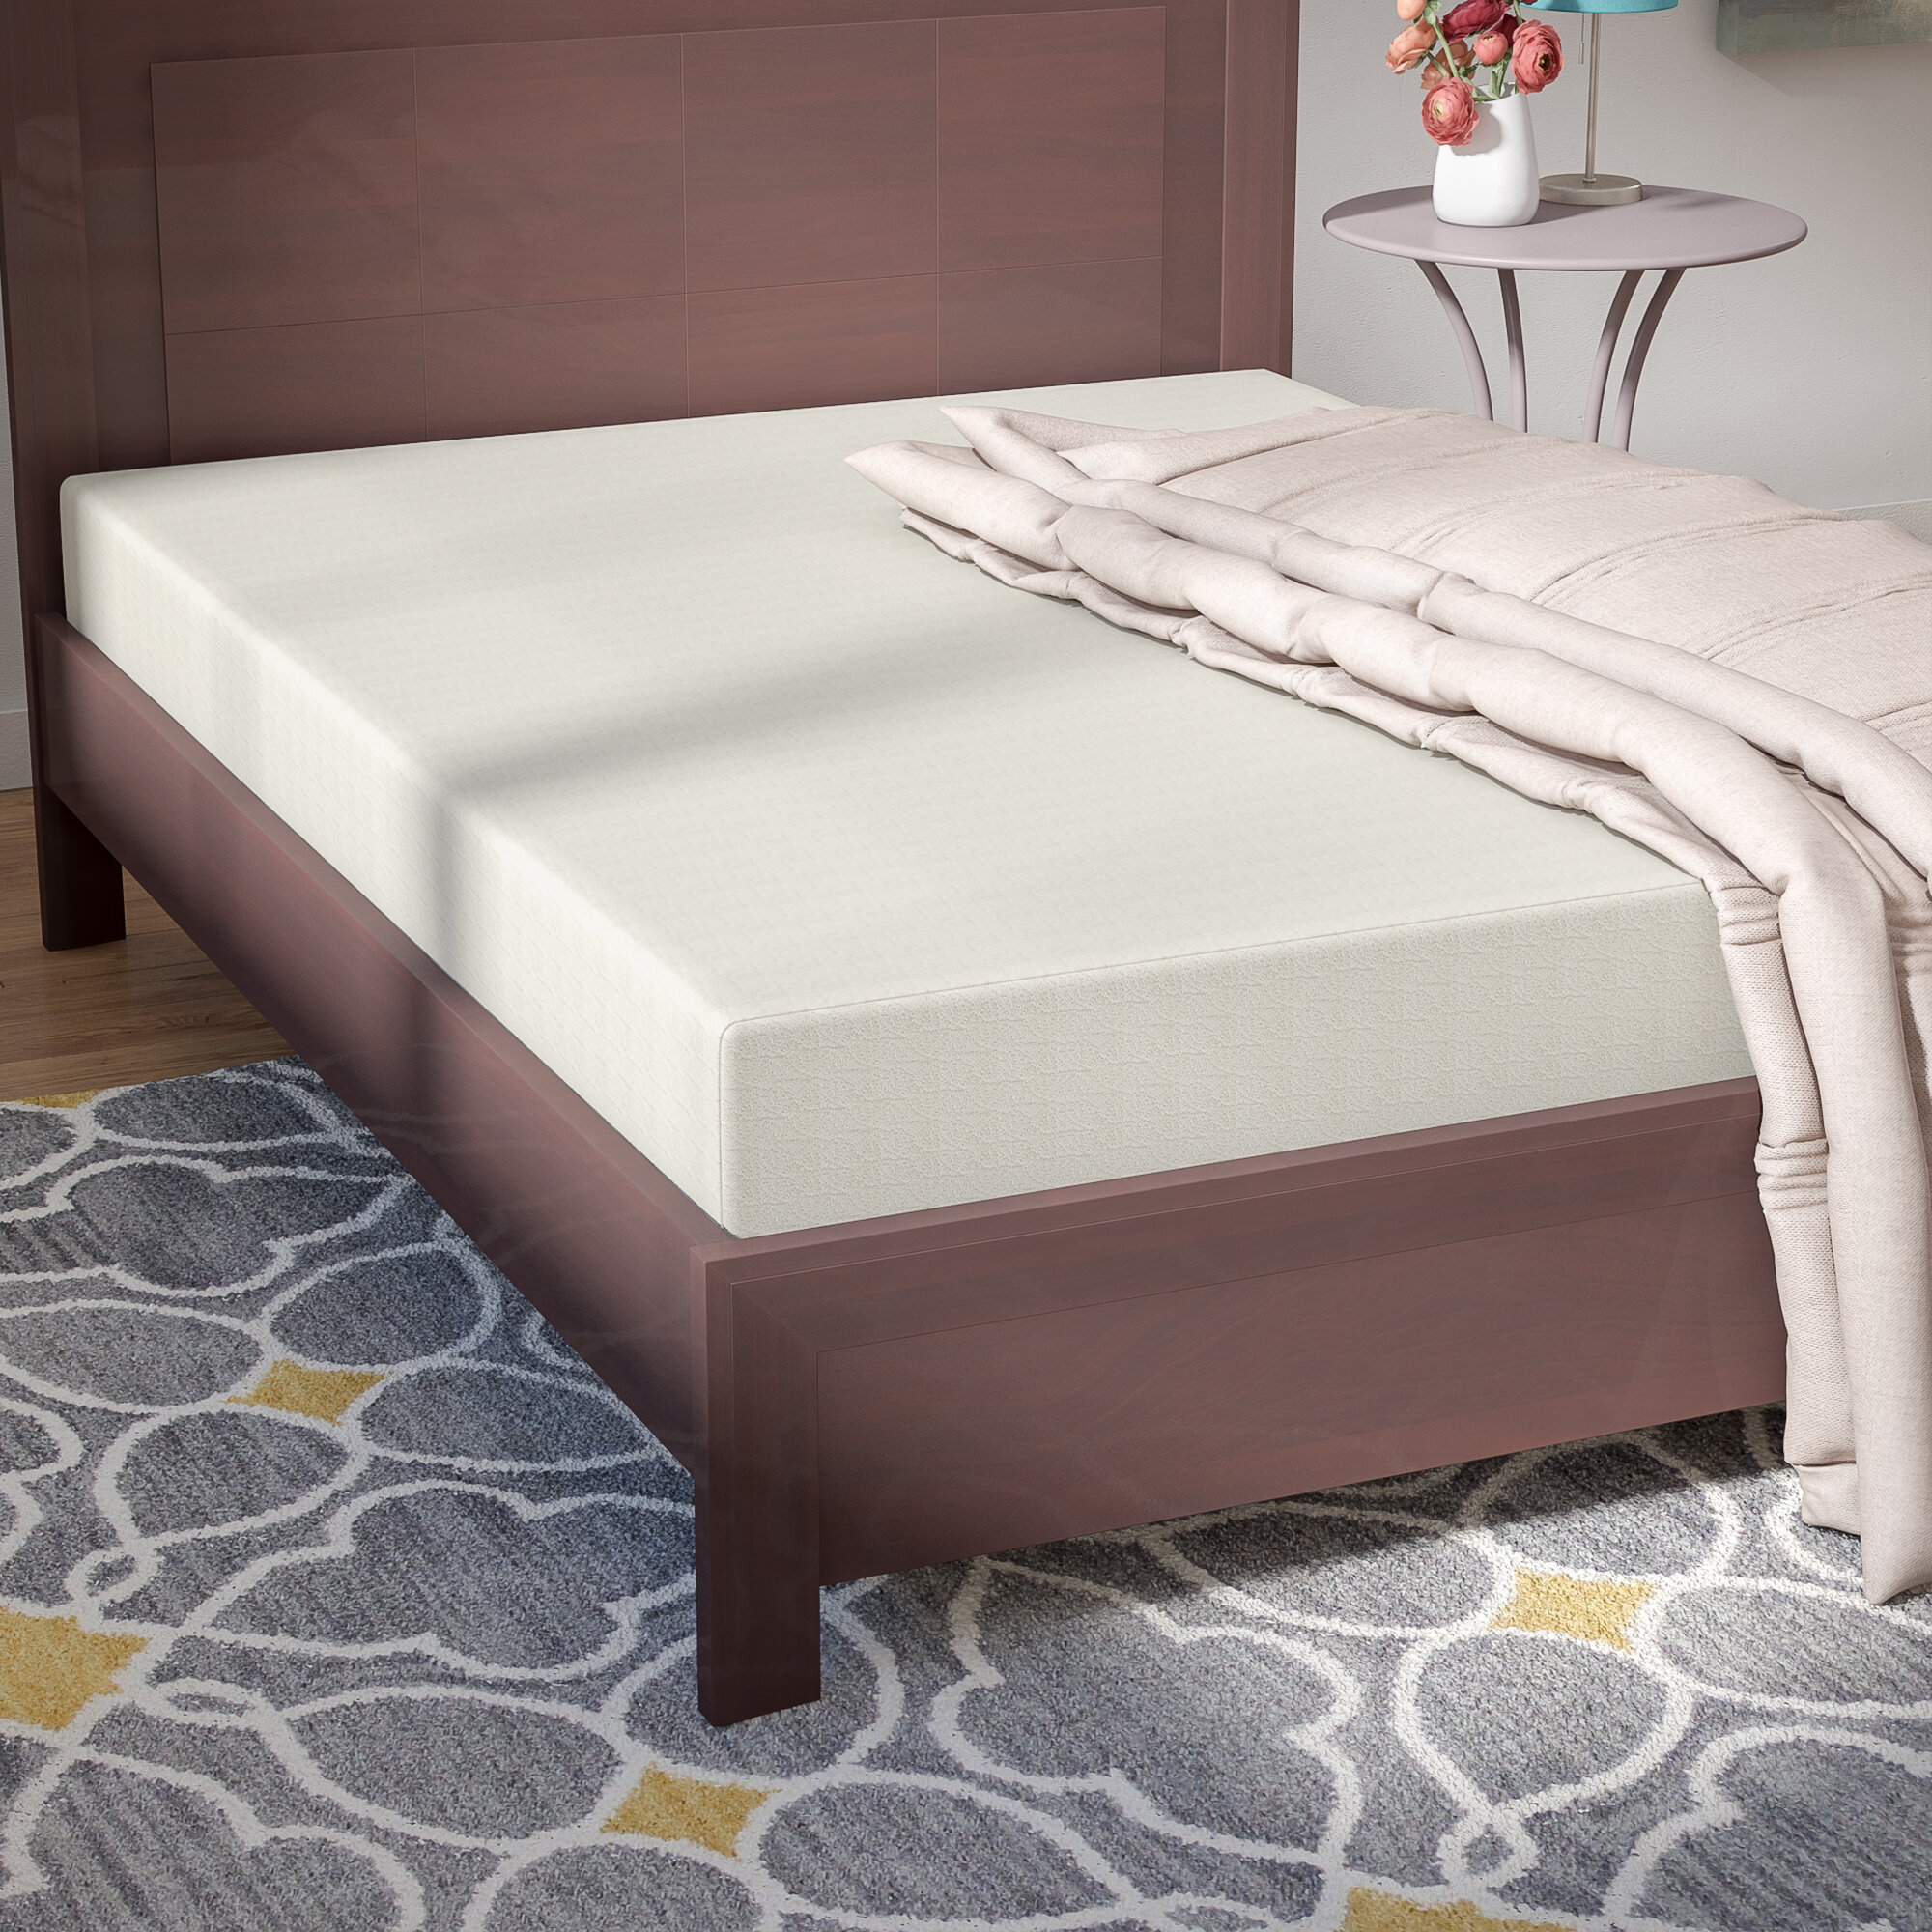 mattress best design time amazing to remodel about of year home ideas inspirational buy with furniture designing